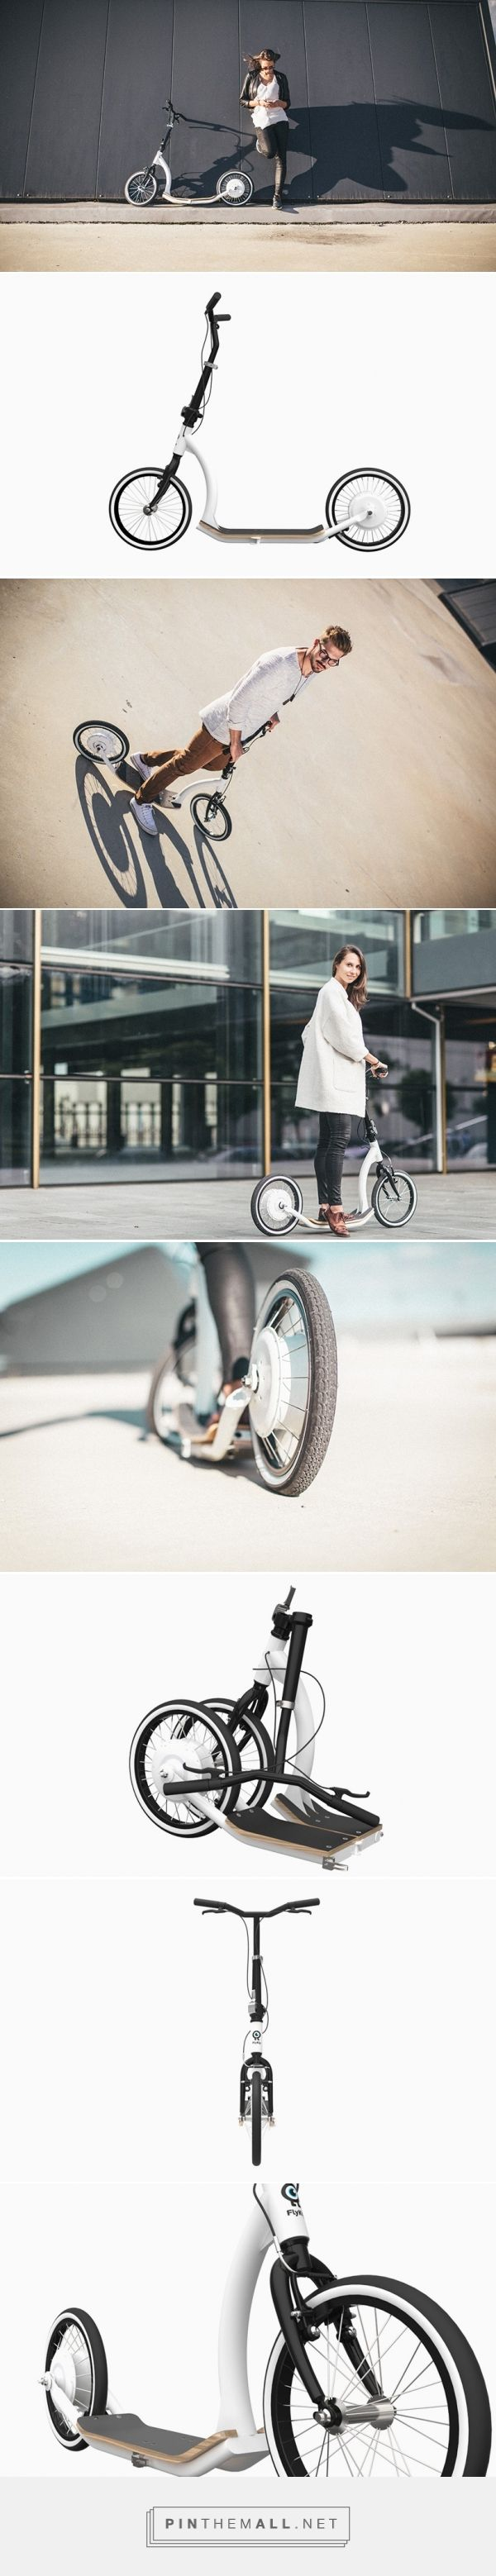 smart ped scooter designed by flykly adds electric assist system to go farther - created via http://pinthemall.net